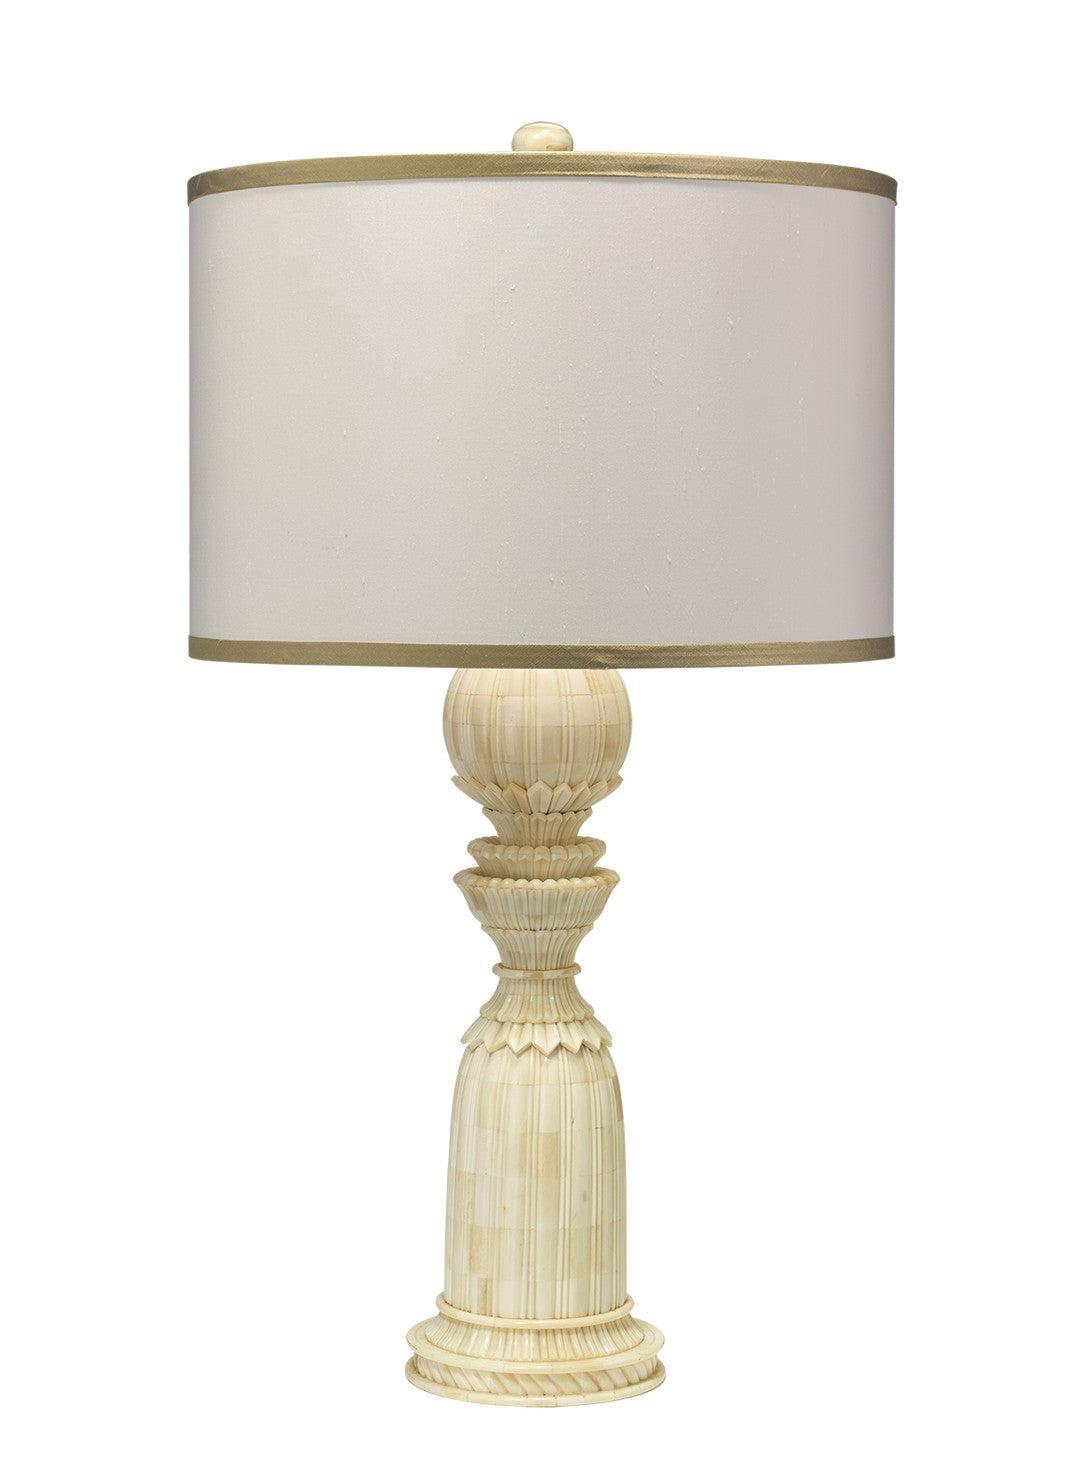 Casablanca table lamp jamie young luxe home philadelphia casablanca table lamp jamie young geotapseo Gallery